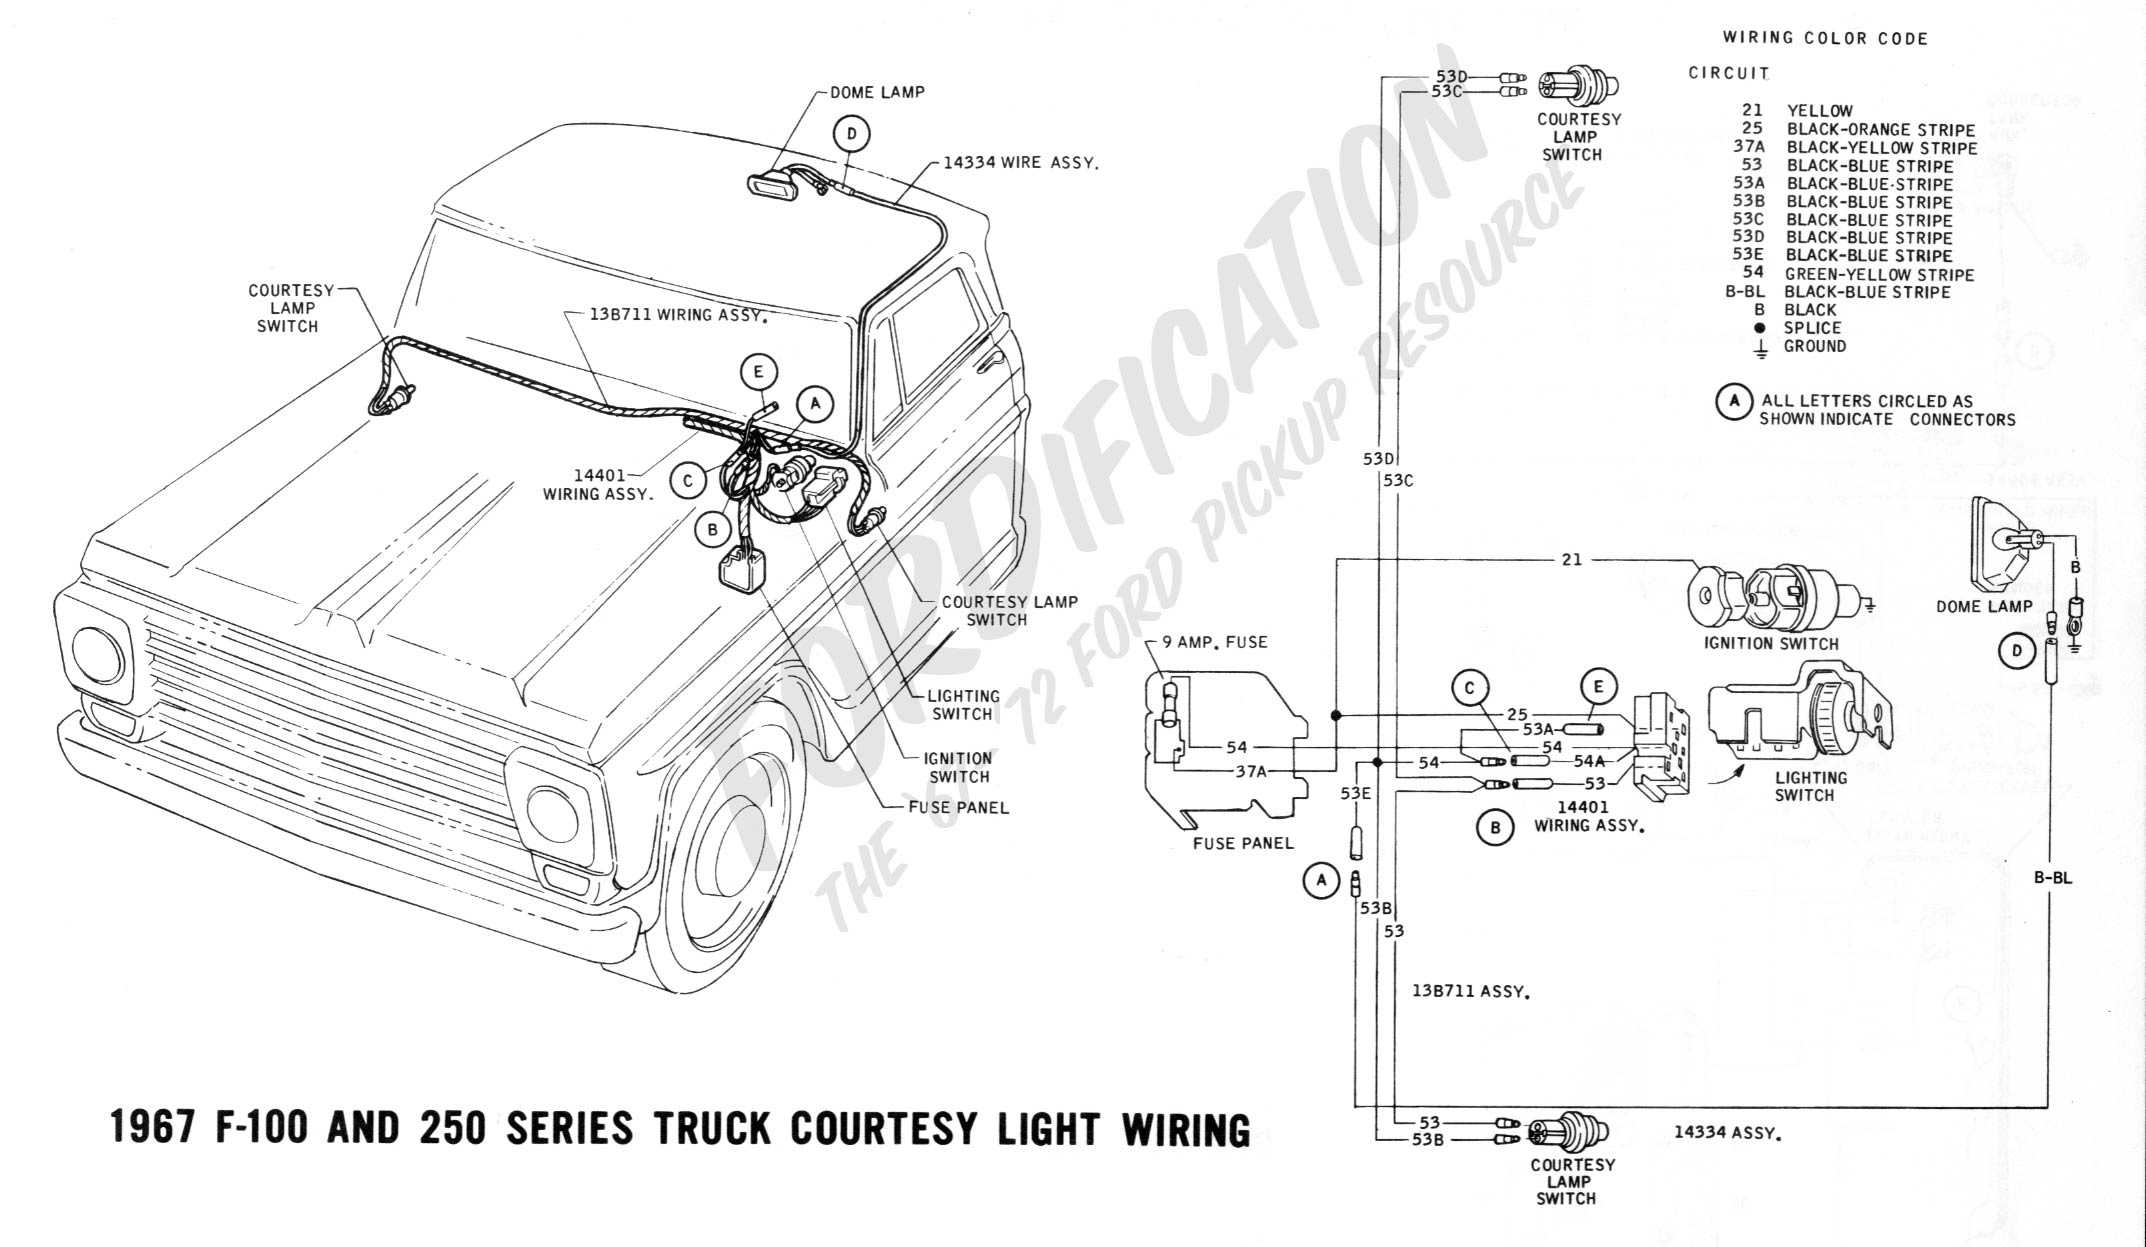 1968 Chevy Camaro Under Dash Wiring Diagram Great Design Of 67 Harness Rs 78 Turn Signal